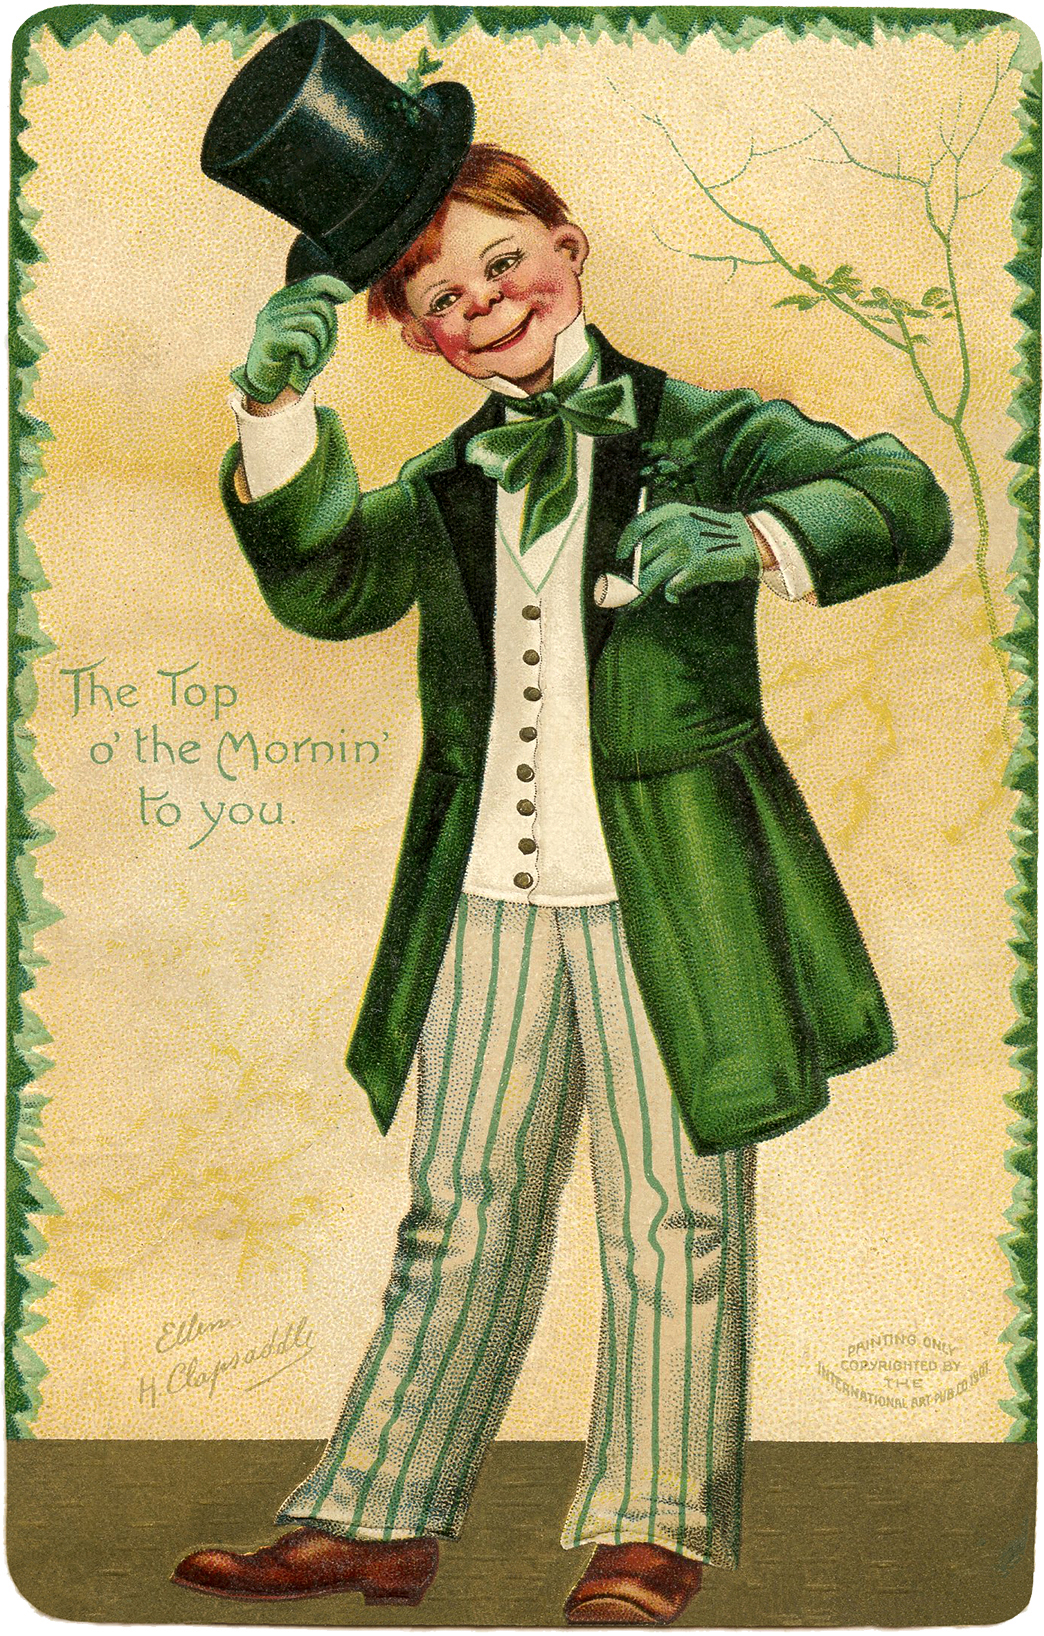 Vintage Redhead Irishman Image The Graphics Fairy